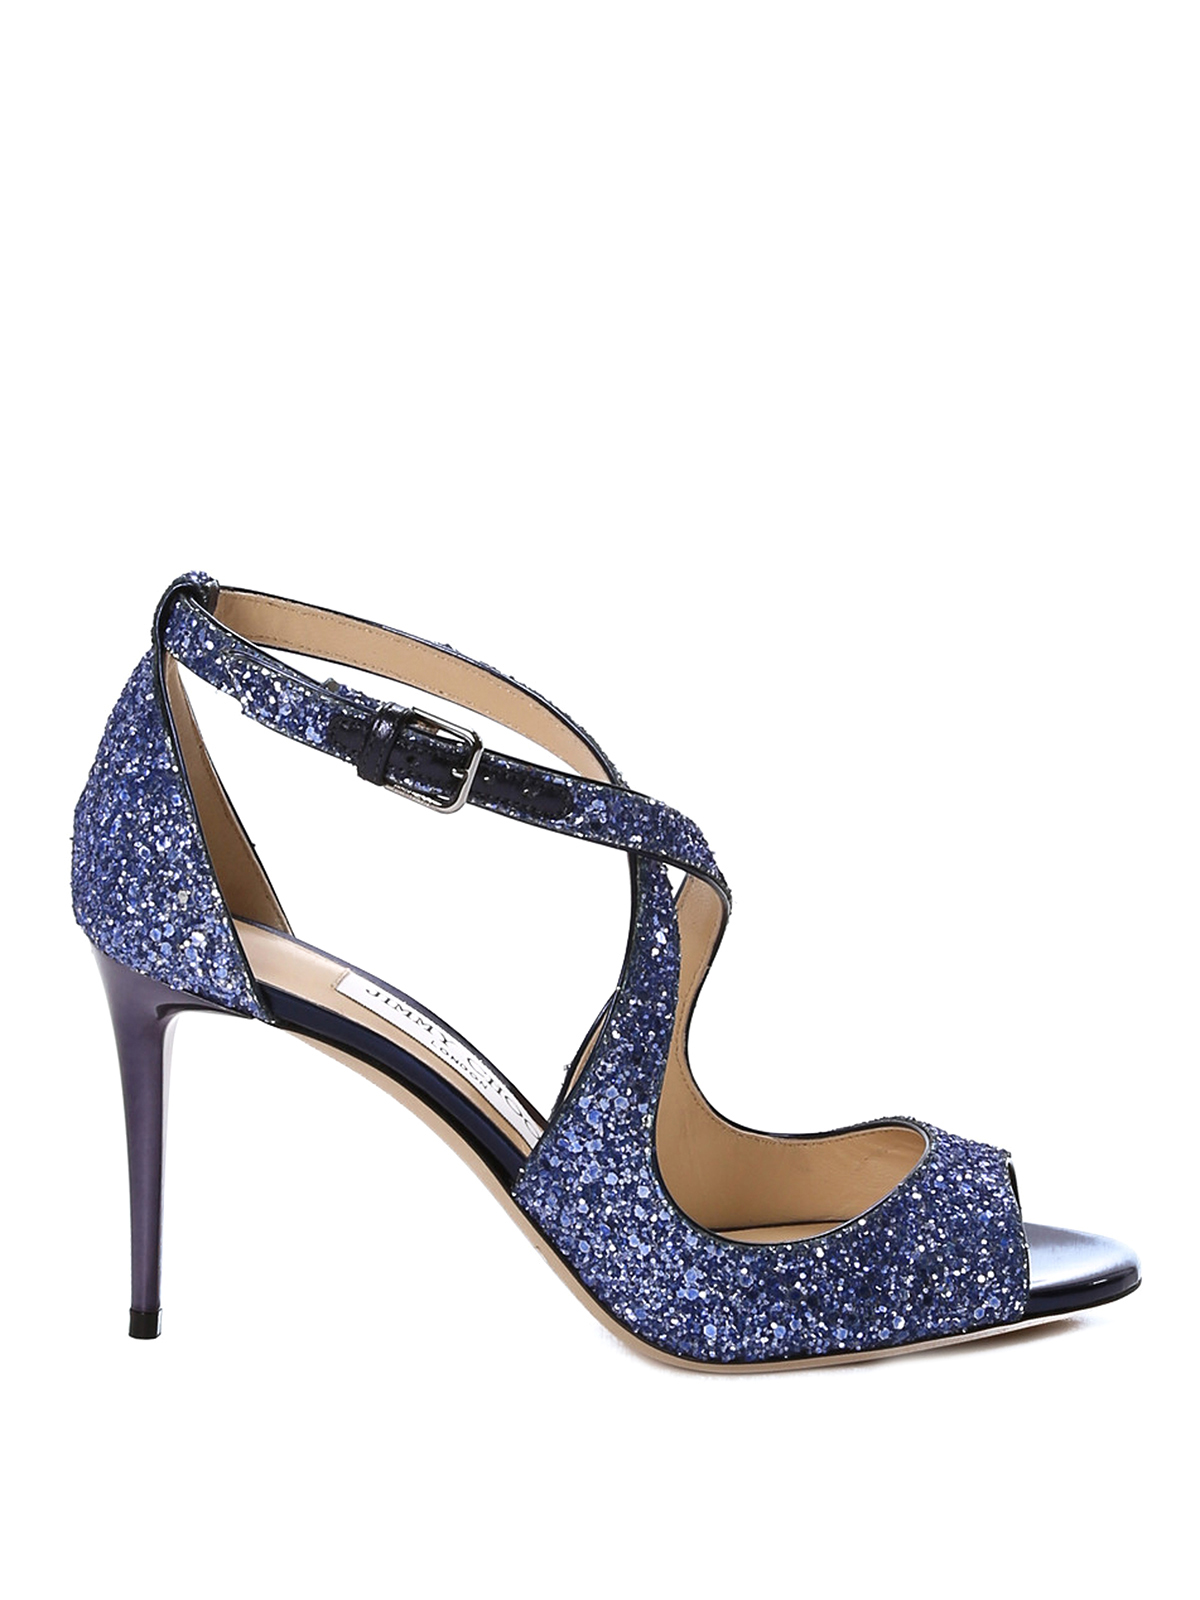 Emily 85 glittered sandals by Jimmy Choo - sandals  42fb2cb5670